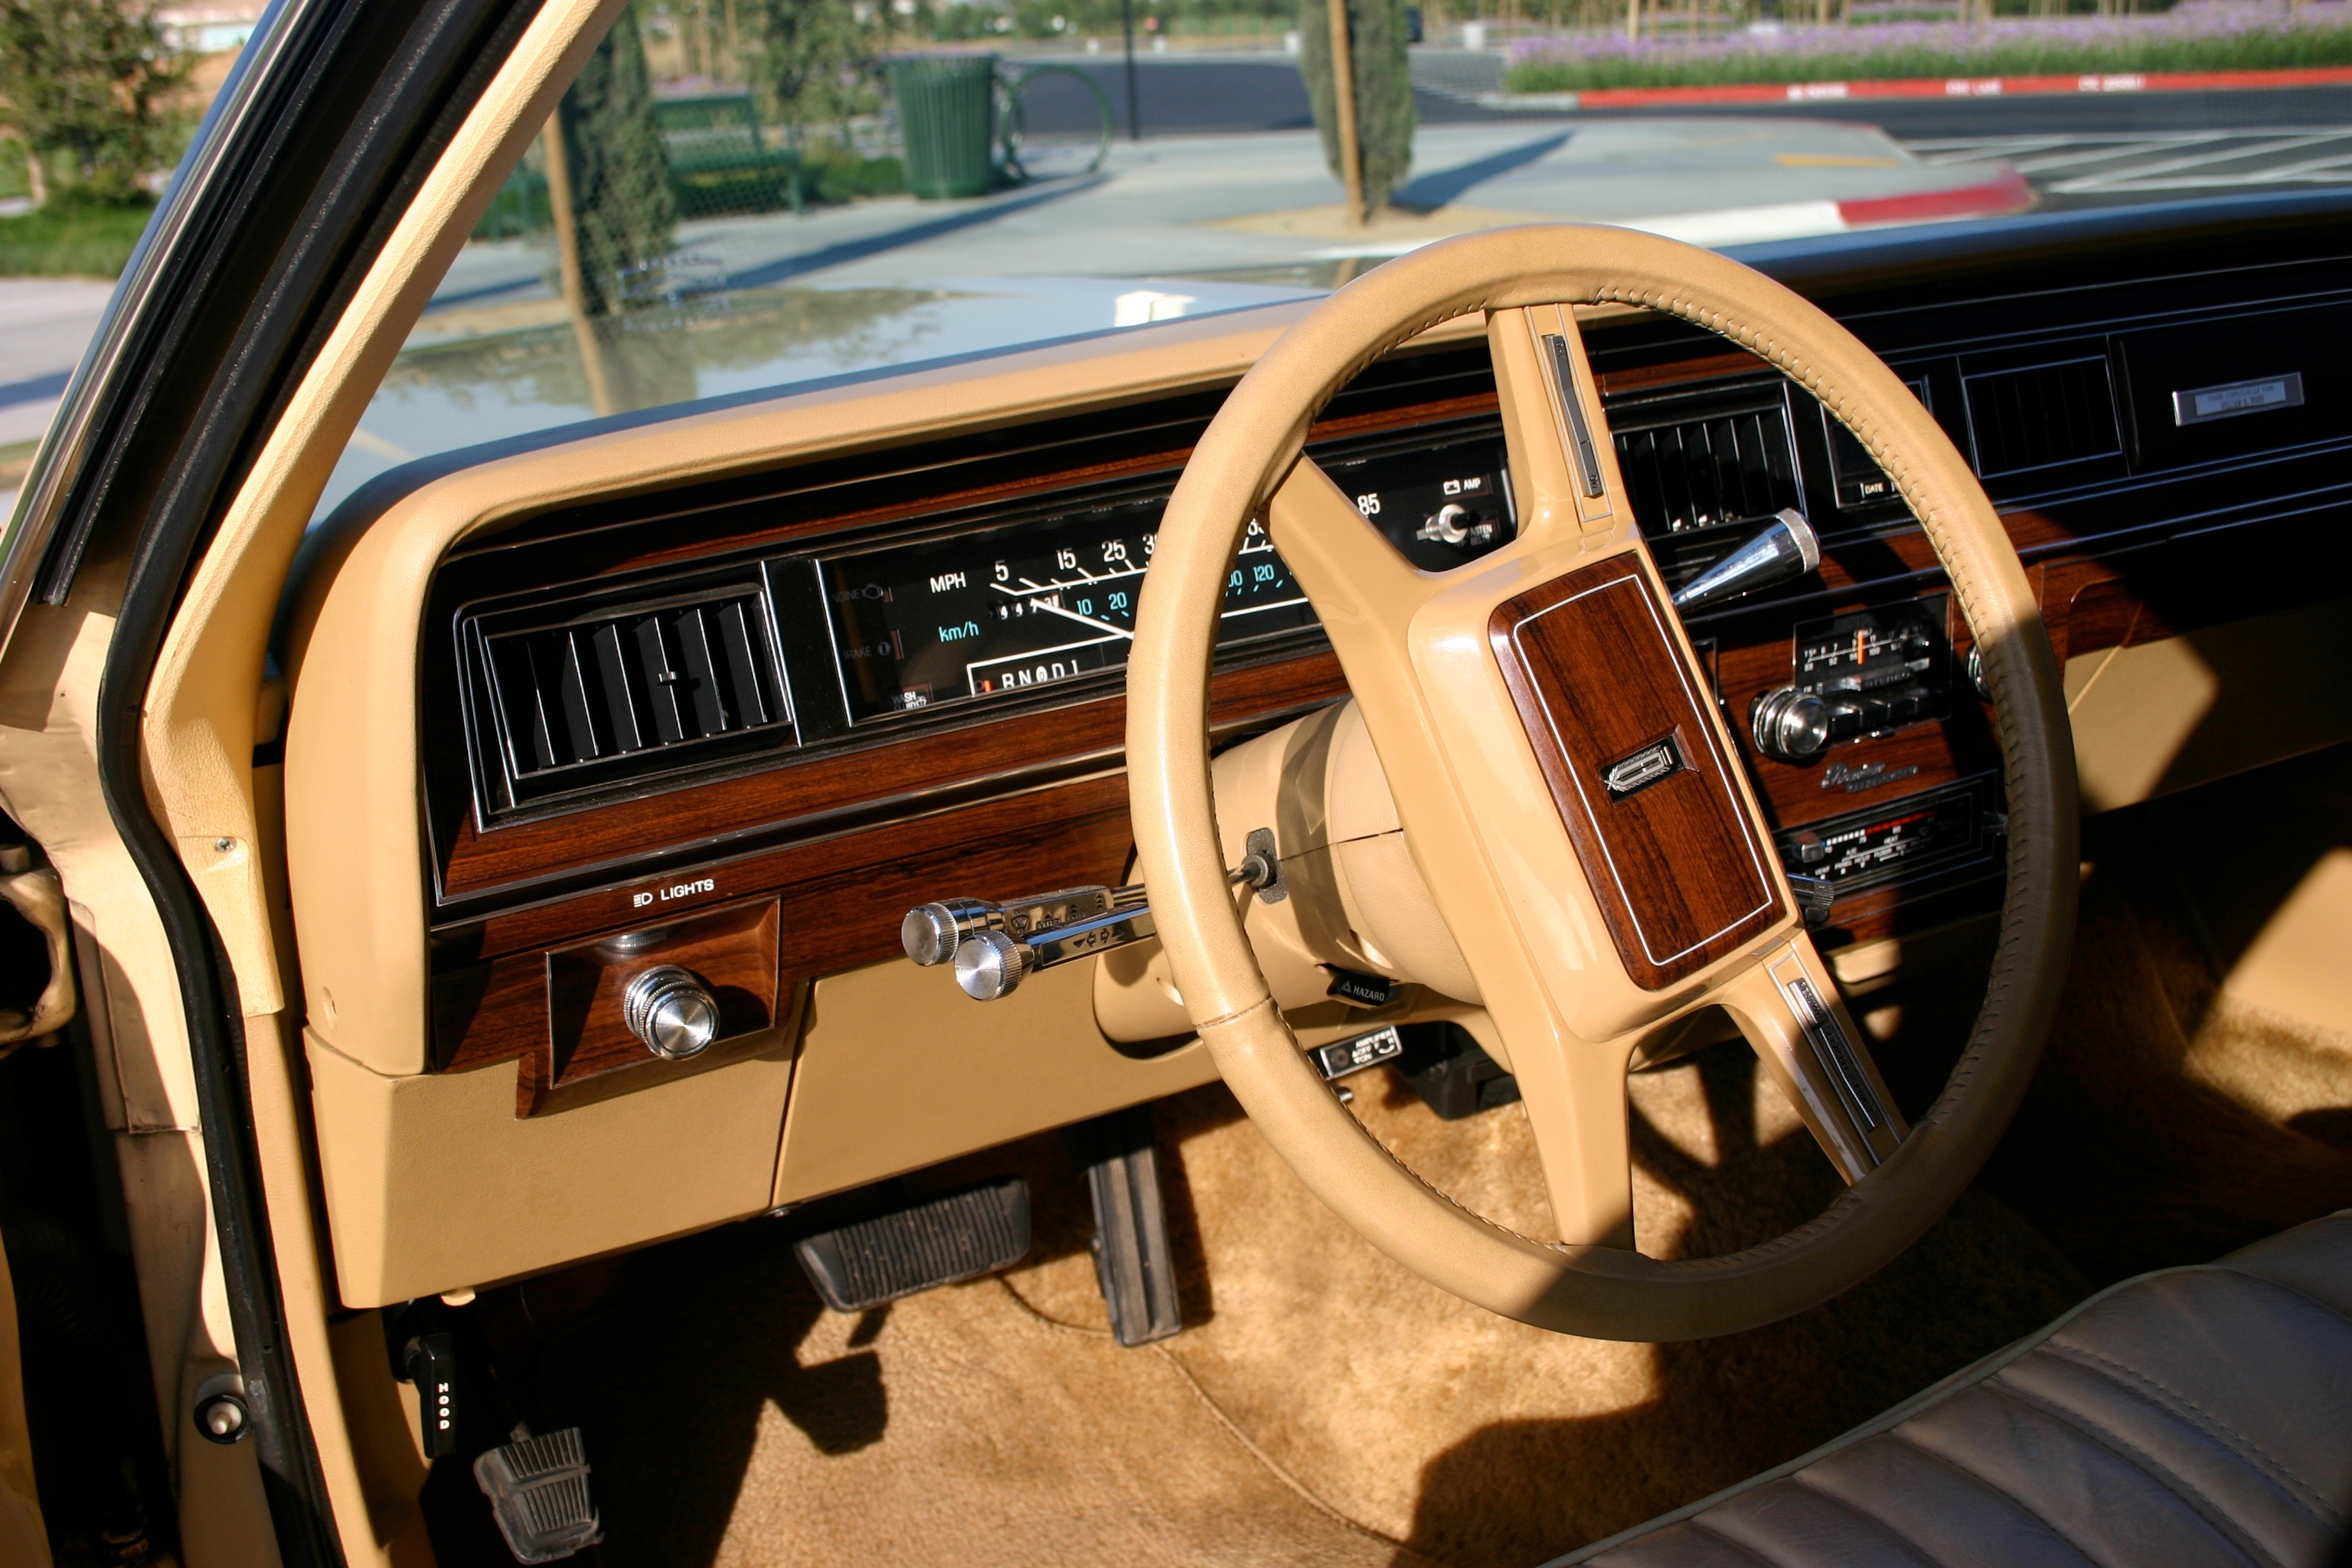 File 1982 country squire interior likewise 1972markiv1a likewise 1961 Lincoln Continental Pictures C13577 additionally File 1976 Lincoln Continental Mark IV Givenchy designer series  interior likewise 1068730 guilty Pleasure Lincoln Continental Mark V Givenchy Edition. on 1975 lincoln town car